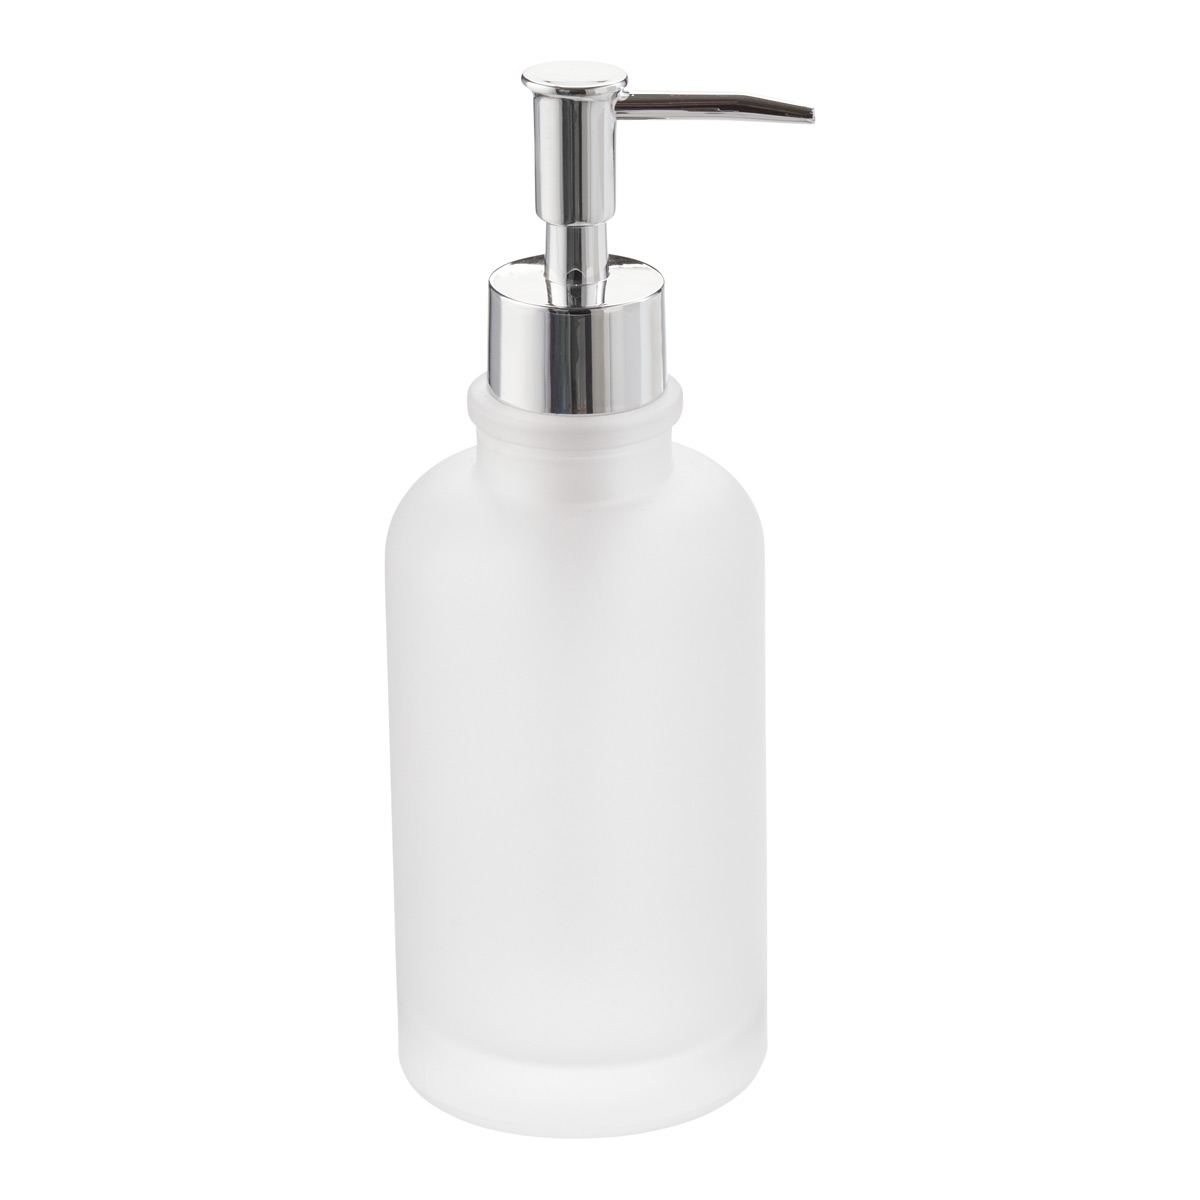 Frosted Glass Soap Pump